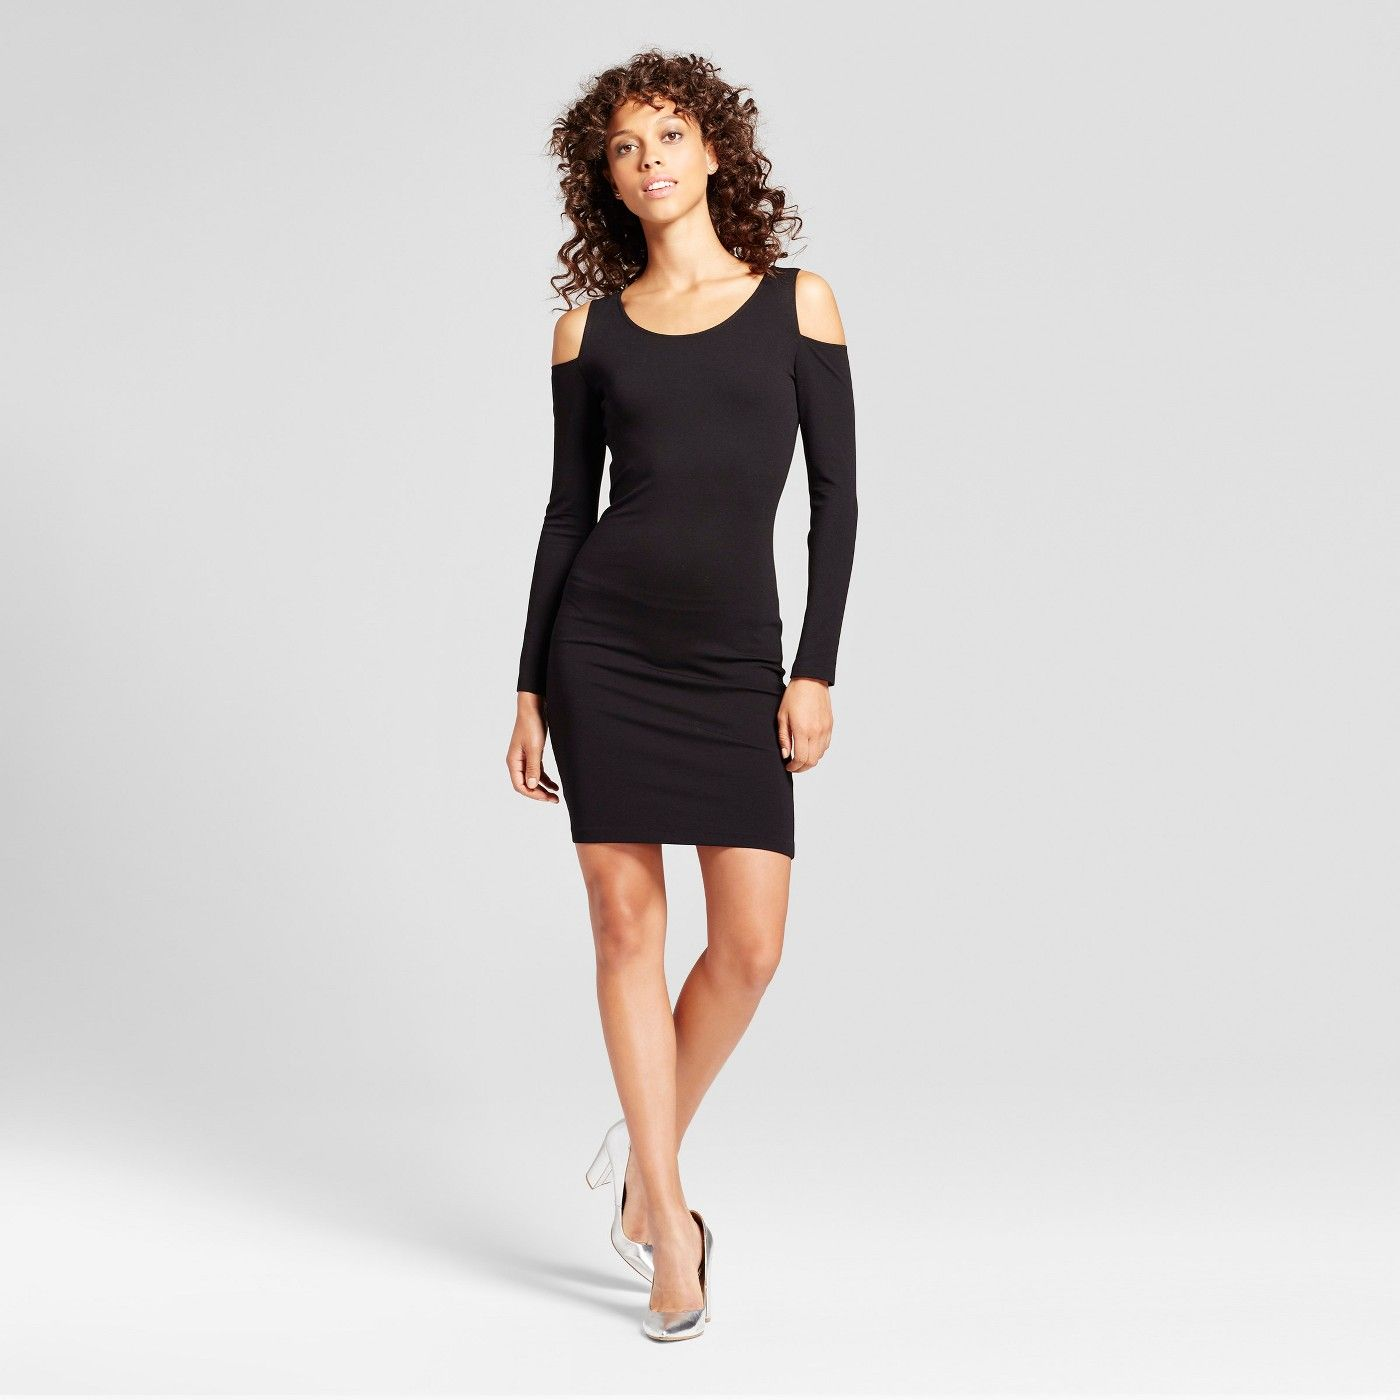 Gothic Fashion At Target Yes You Can Shop Goth At Target Bodycon Dress Cold Shoulder Bodycon Dresses [ 1400 x 1400 Pixel ]